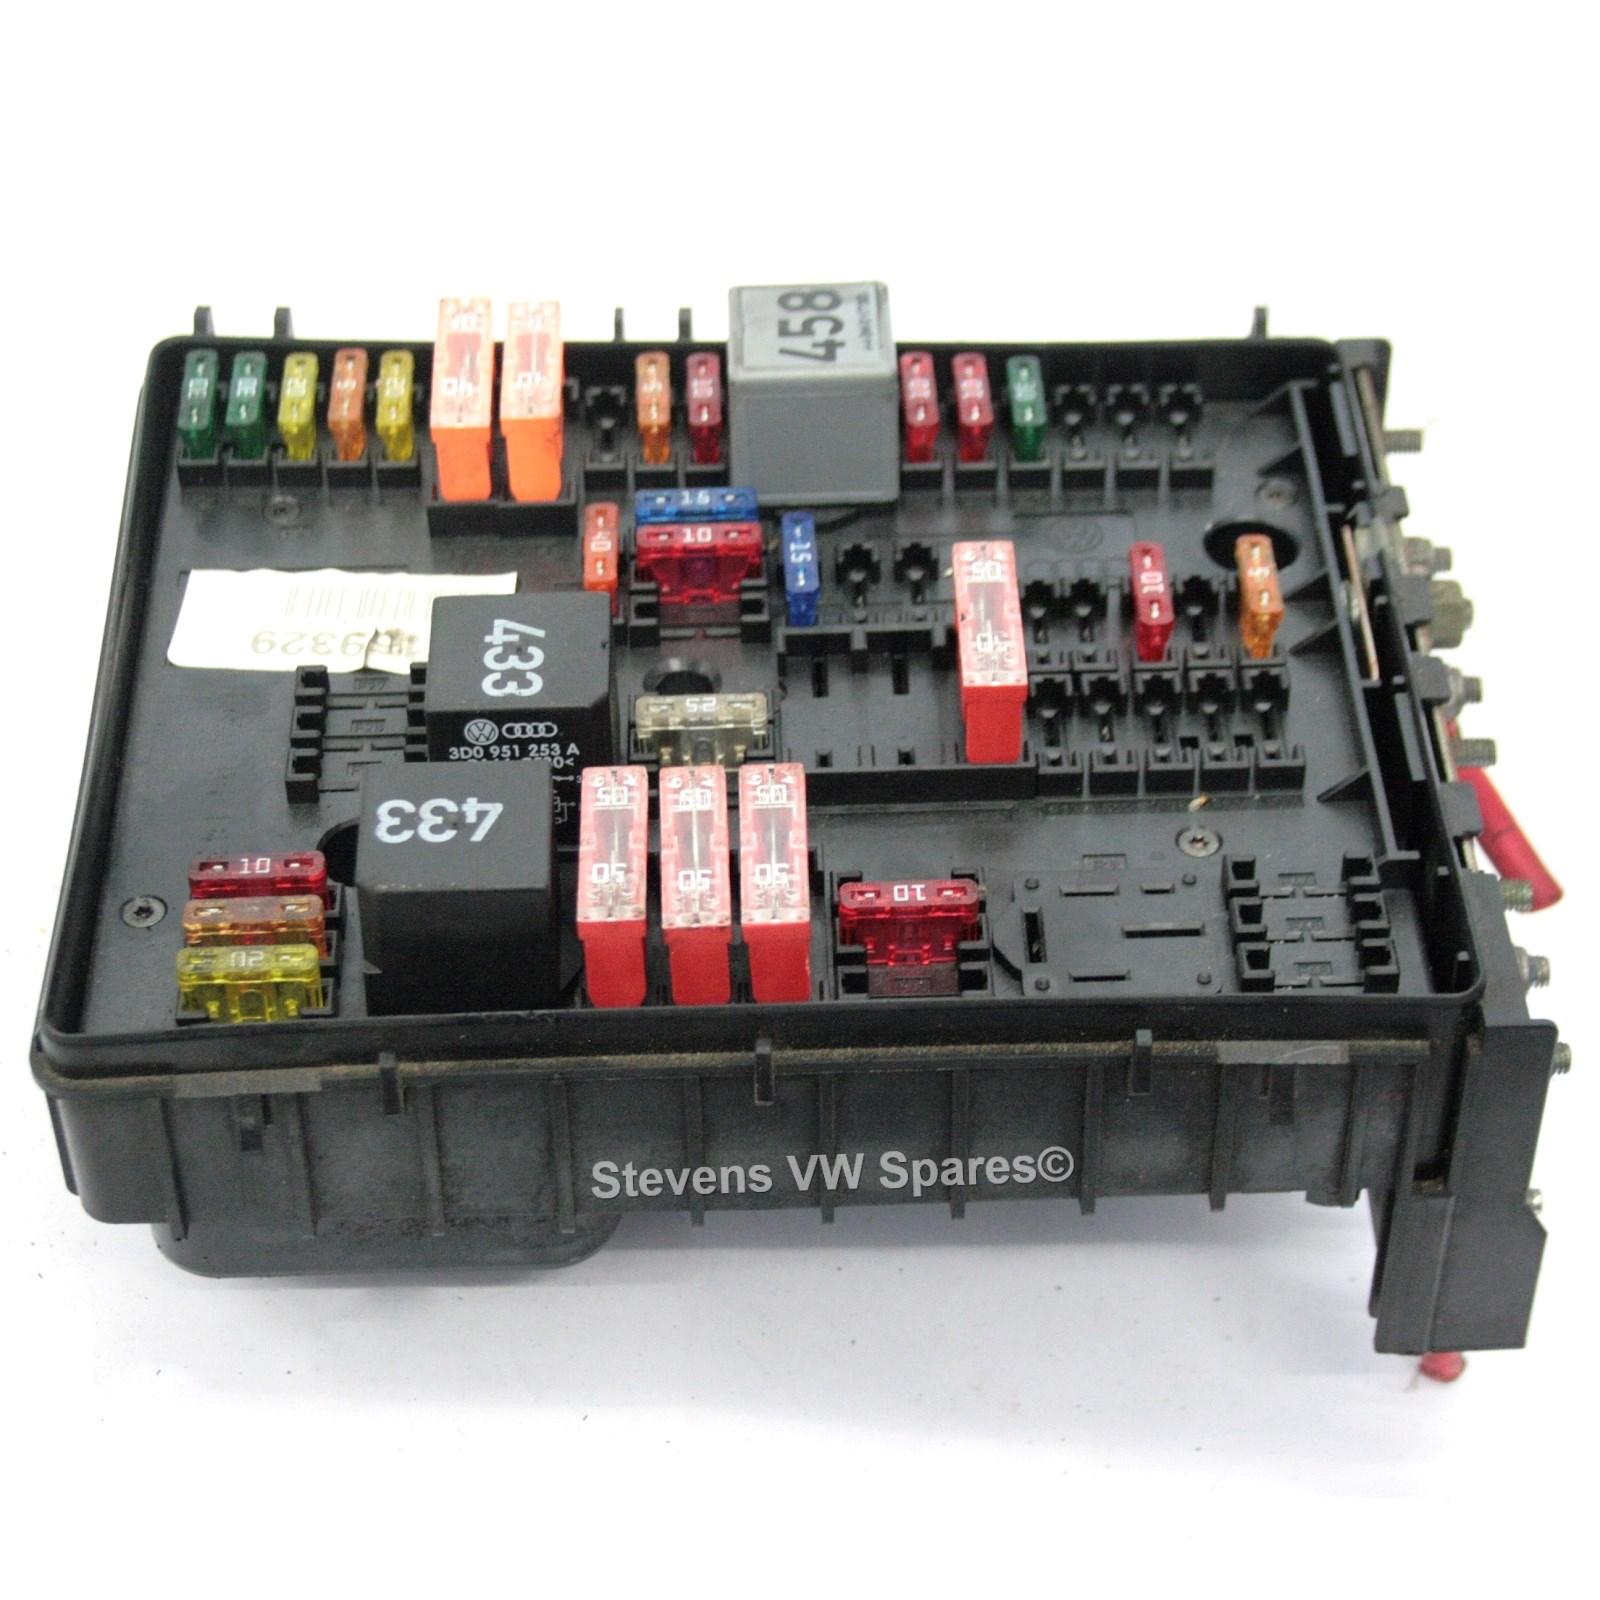 Vw Eos Fuse Box Free Wiring Diagram For You Peugeot 207 Layout Pdf 2009 U2022 Volkswagen Location